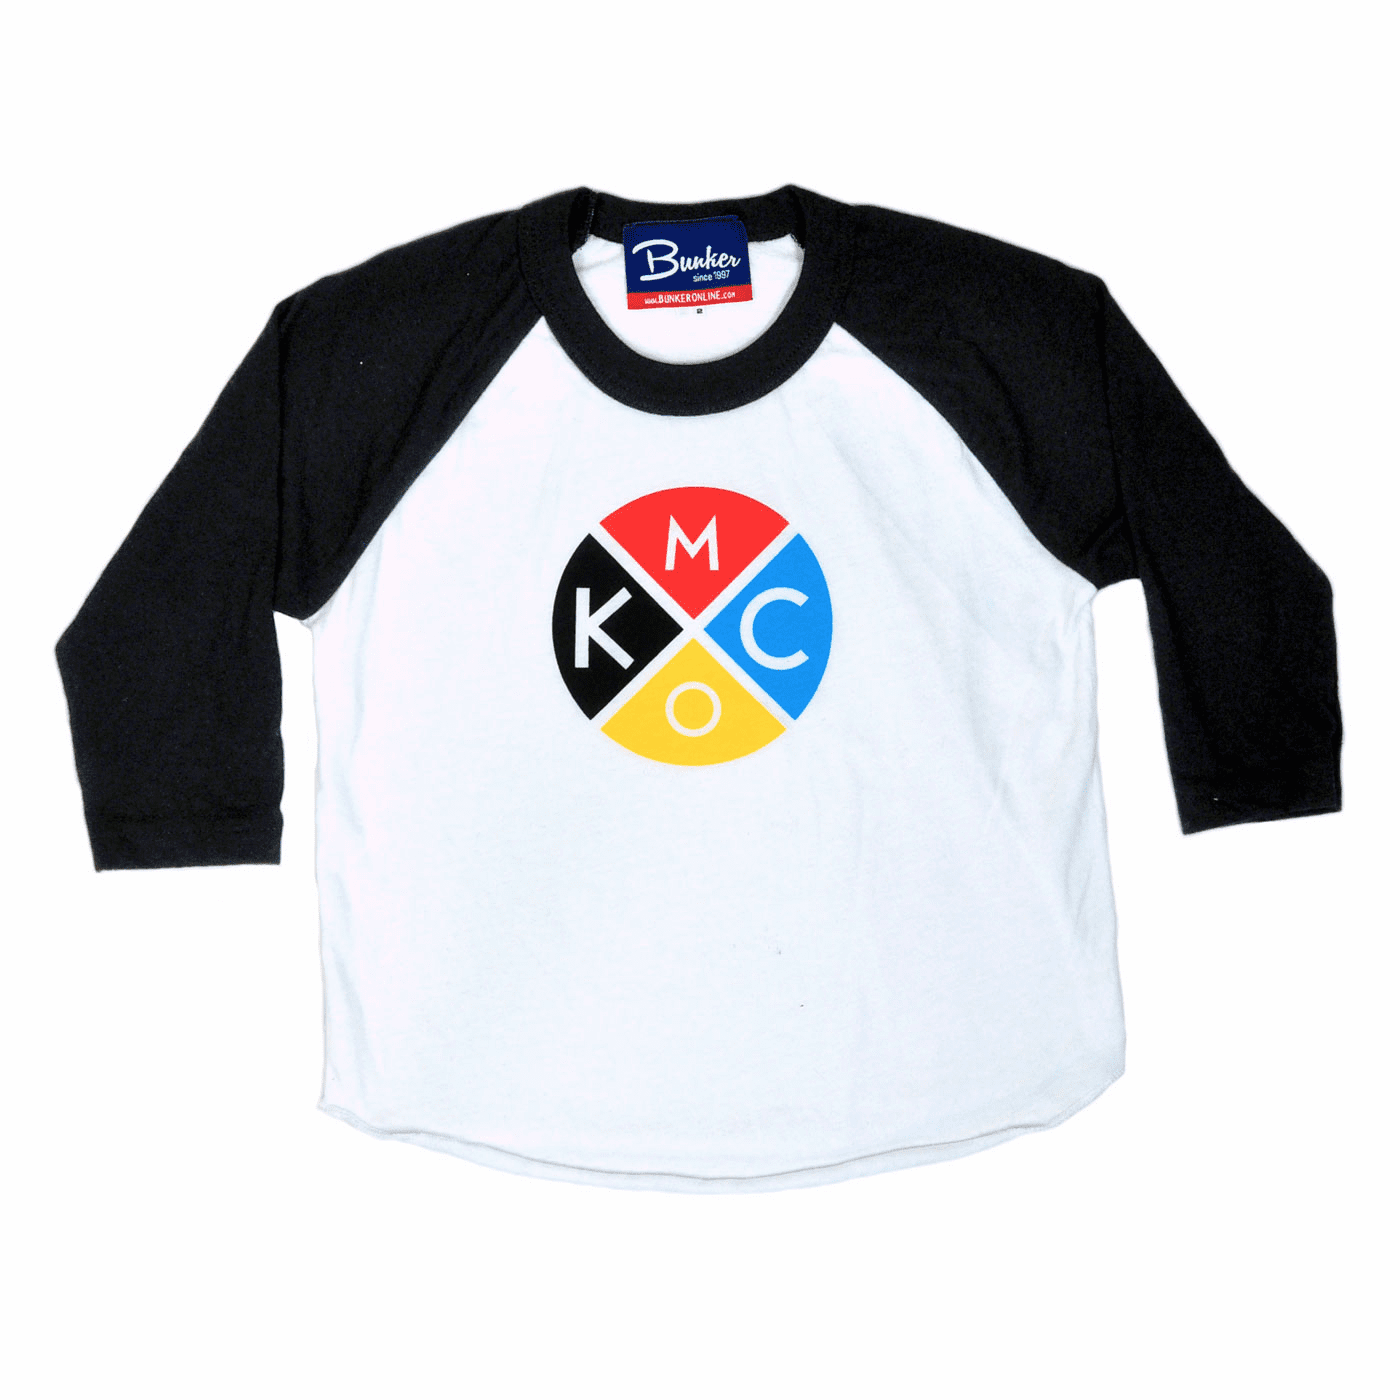 Bunkermade KCMO Baby/Kids Raglan Tee<br>Color Block Black